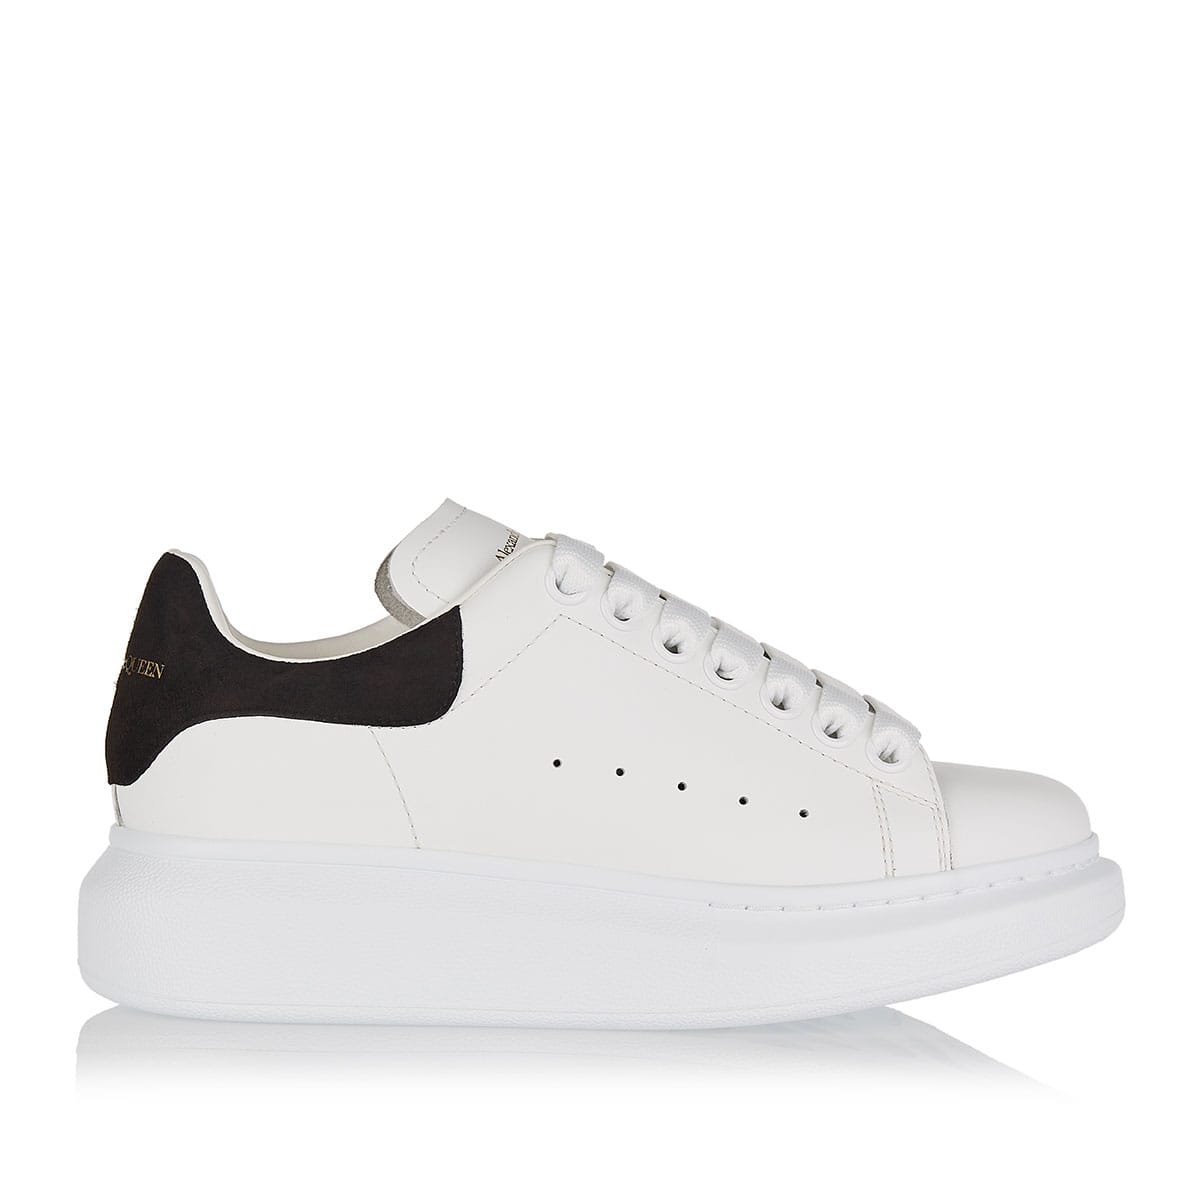 Leather sneakers with oversized sole